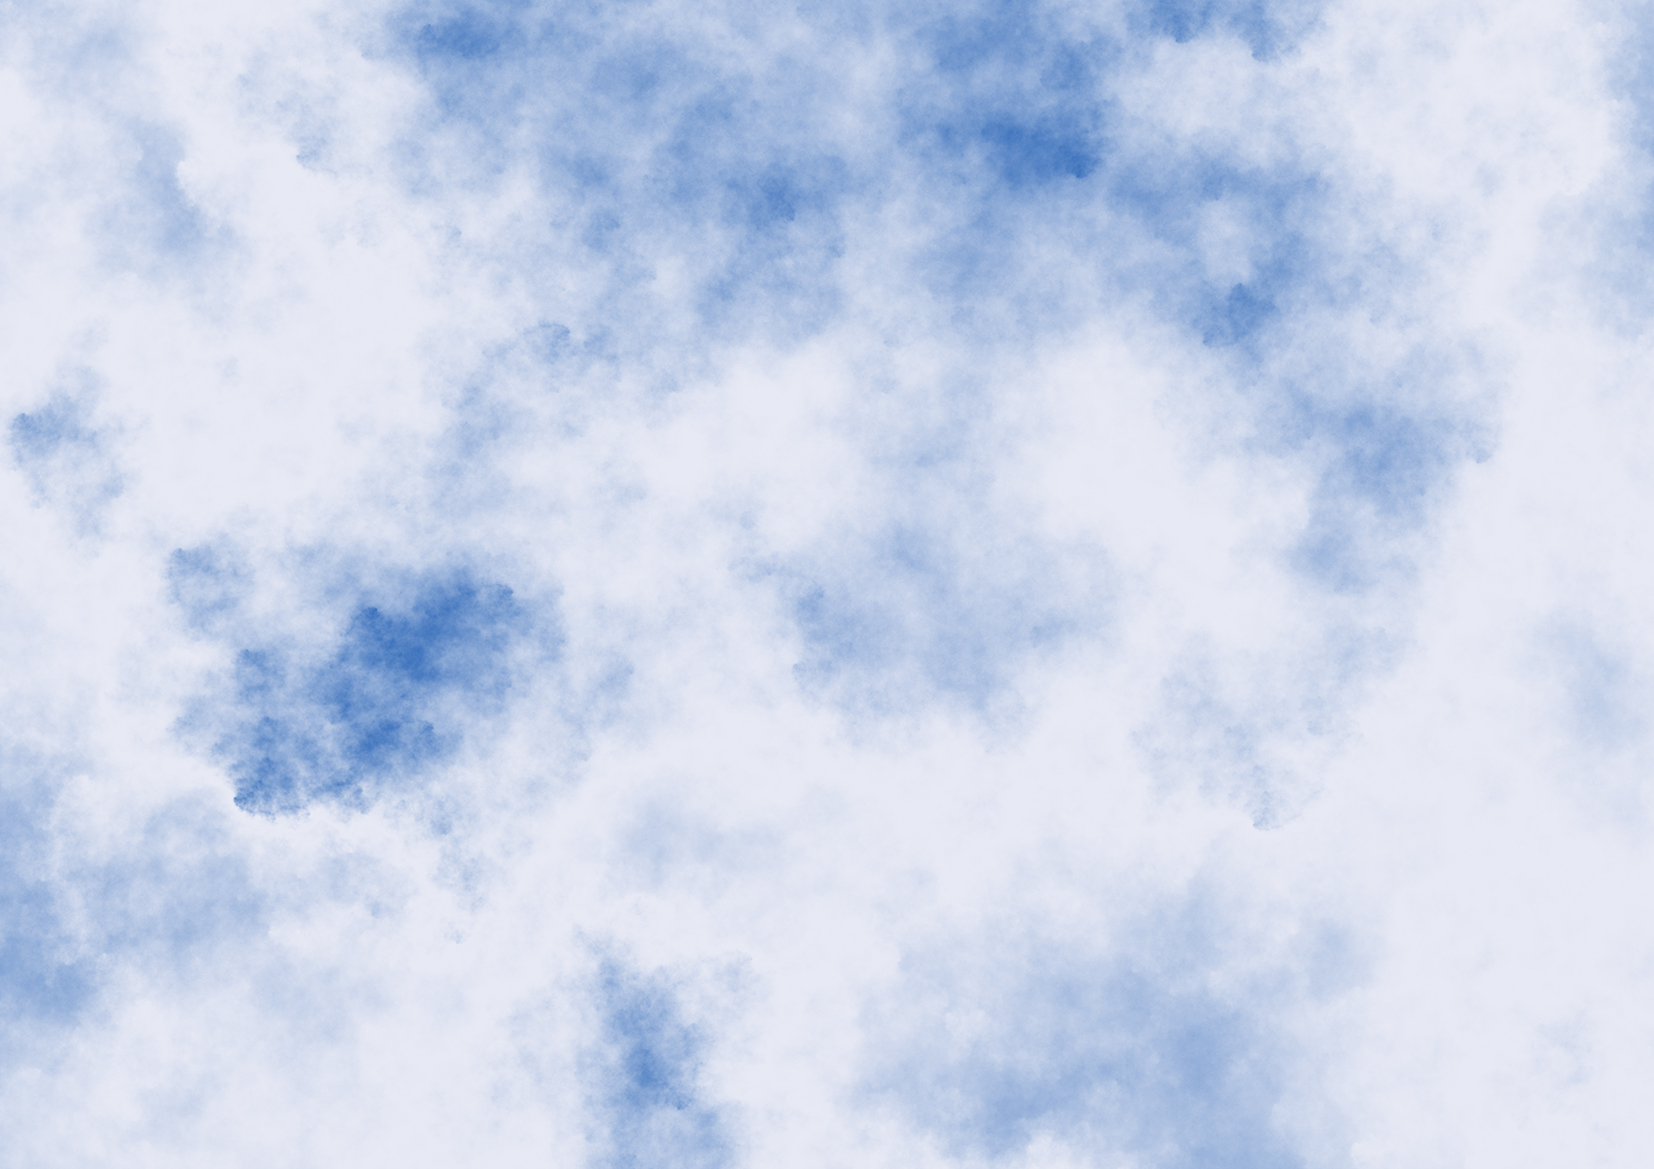 White Clouds by PaulineMoss on DeviantArt